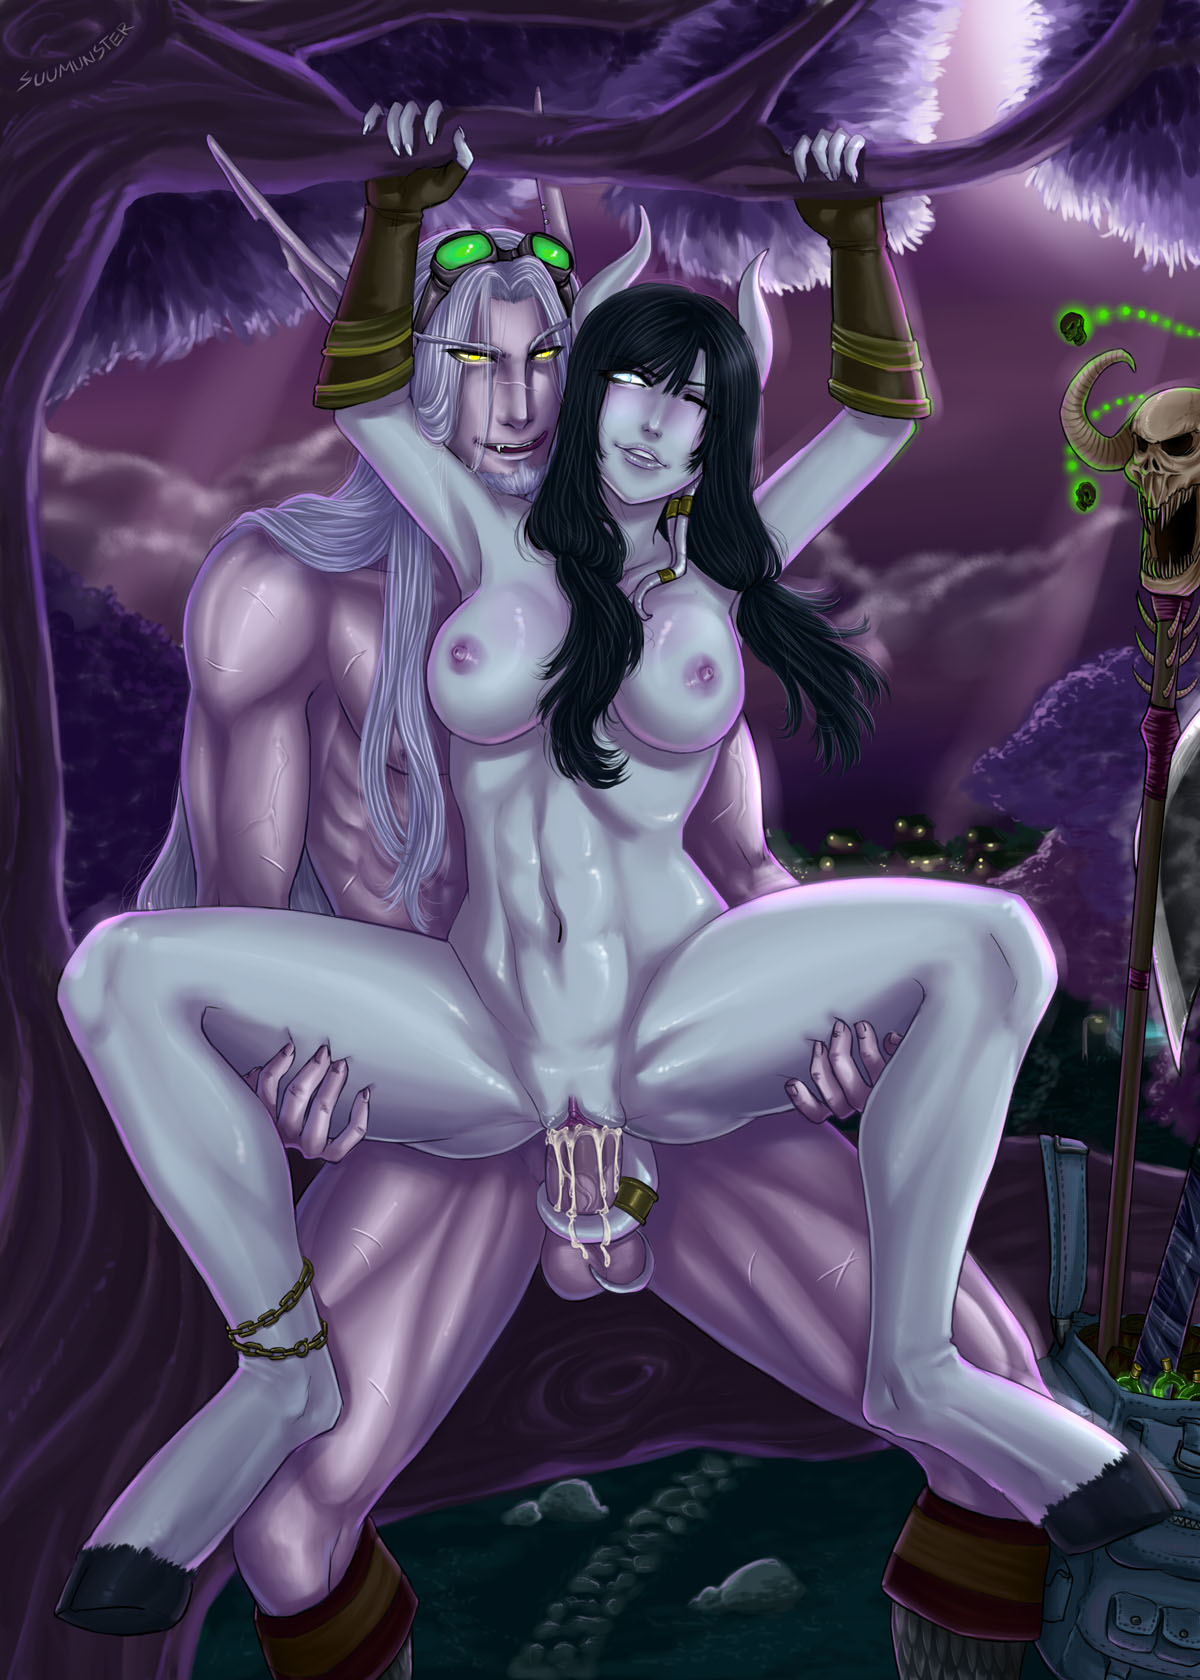 Gnom fuck nightelf nude pictures